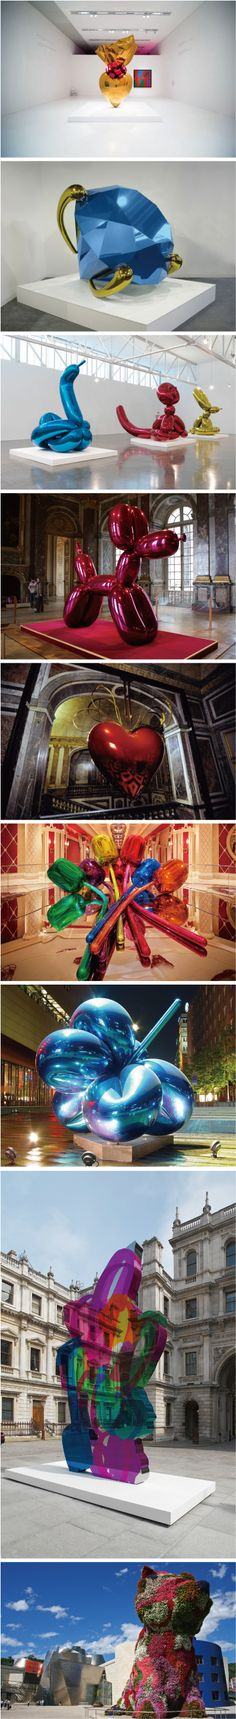 I Like Art / Jeff Koons #art #cool